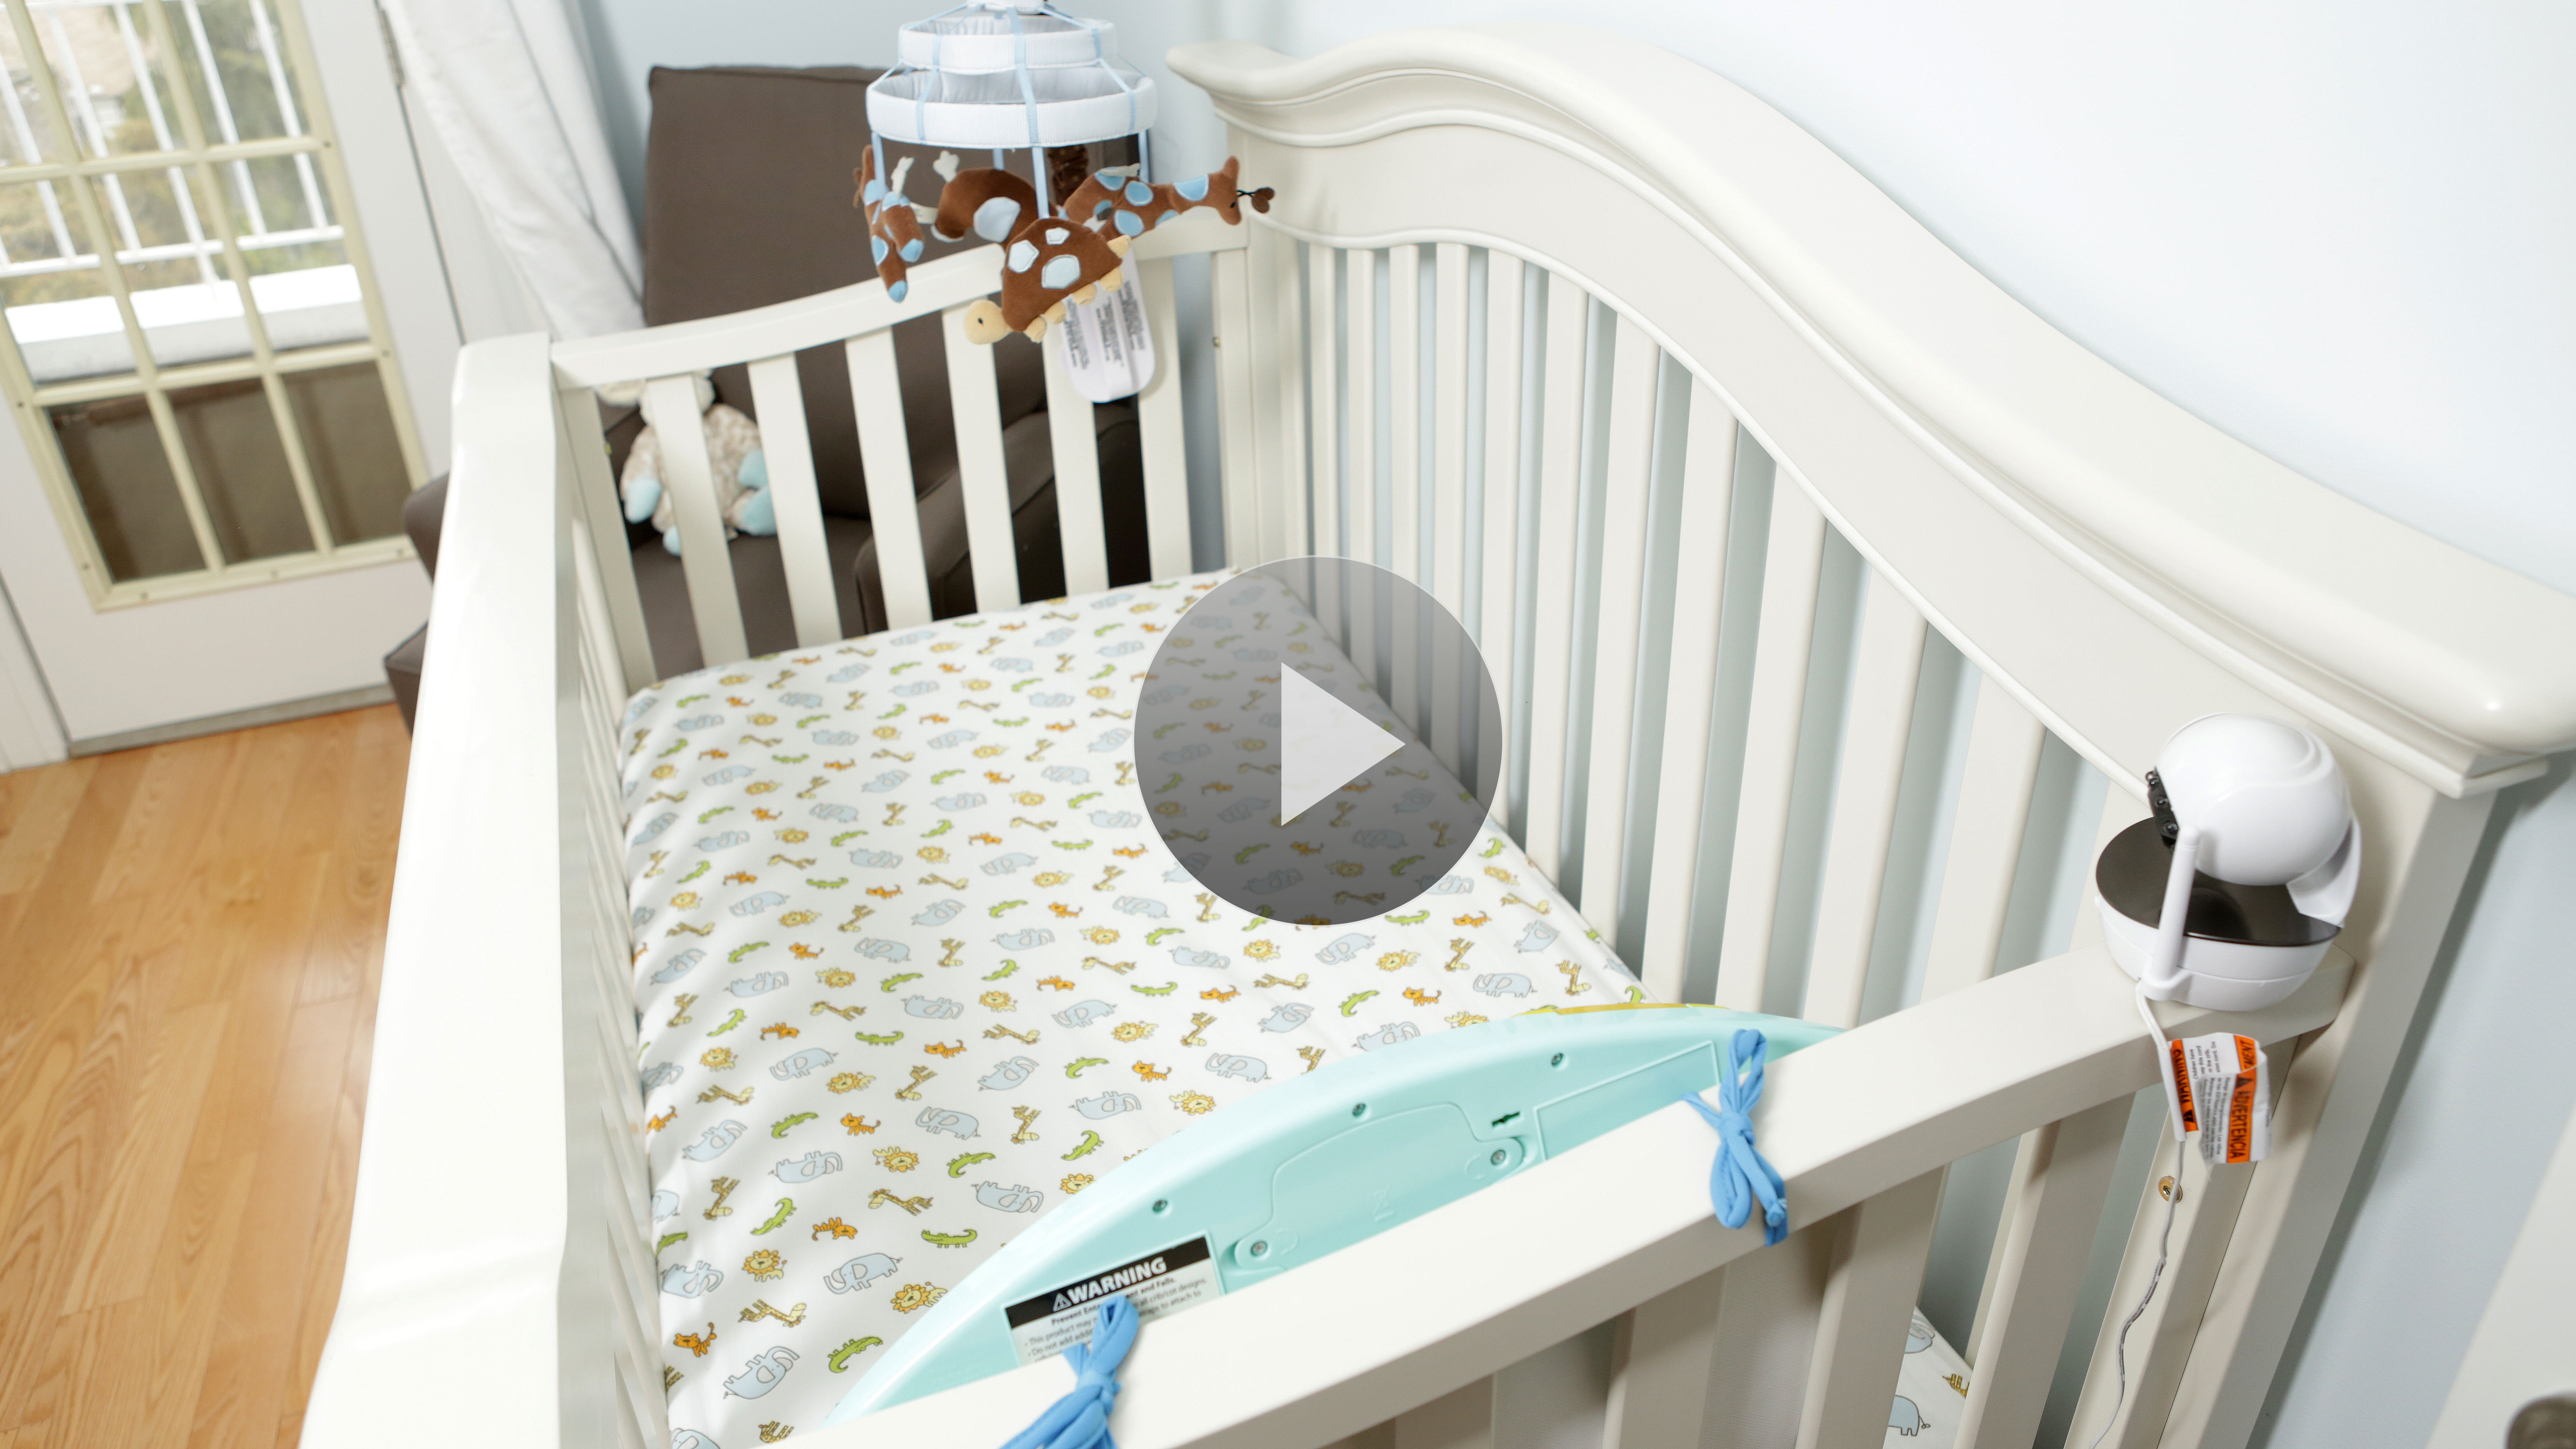 Babyproofing Your Home Crib